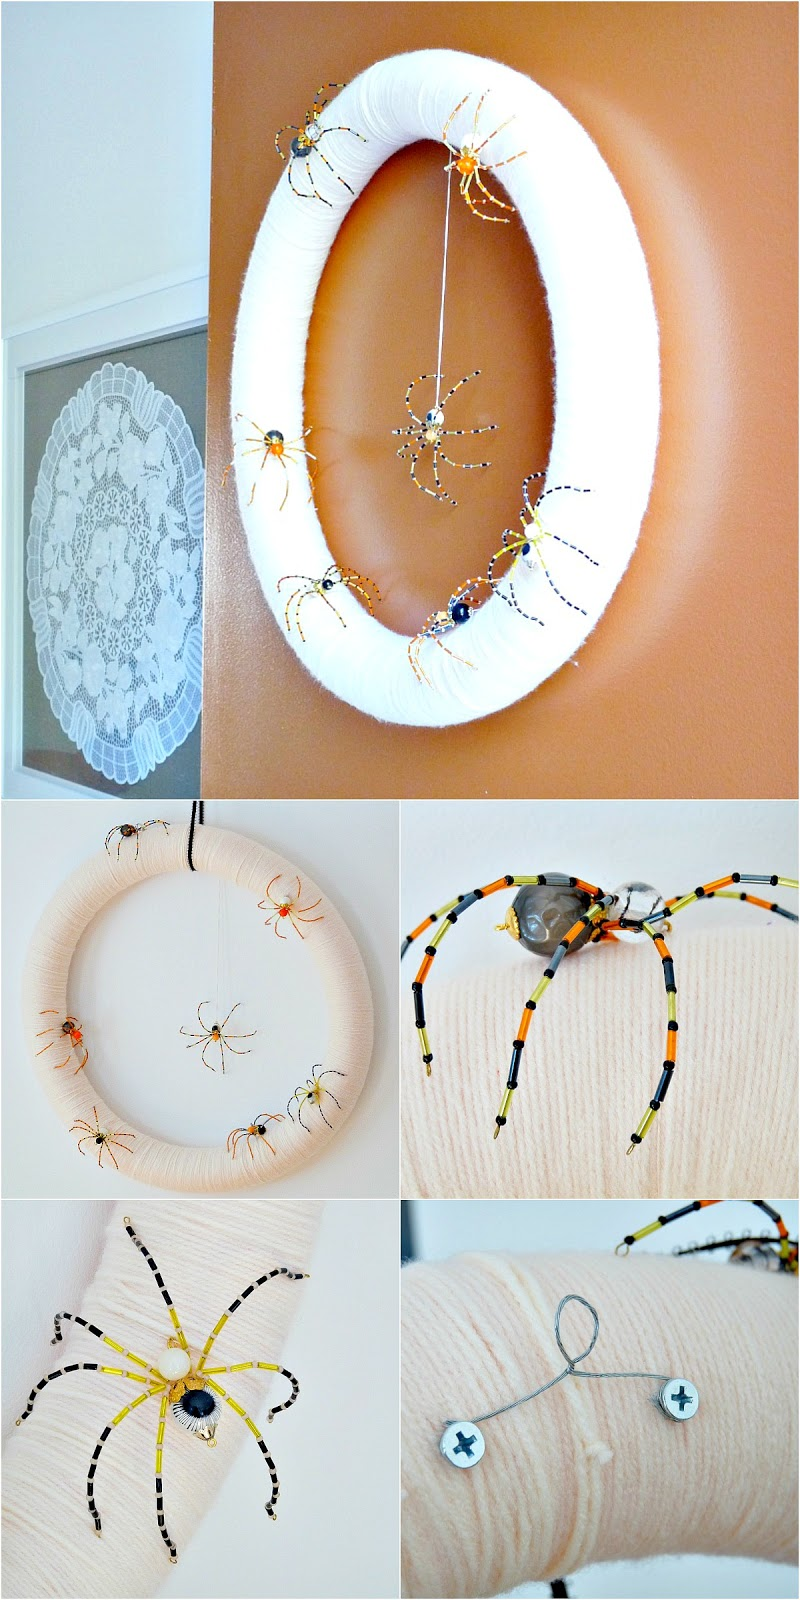 Make a beaded spider Halloween wreath